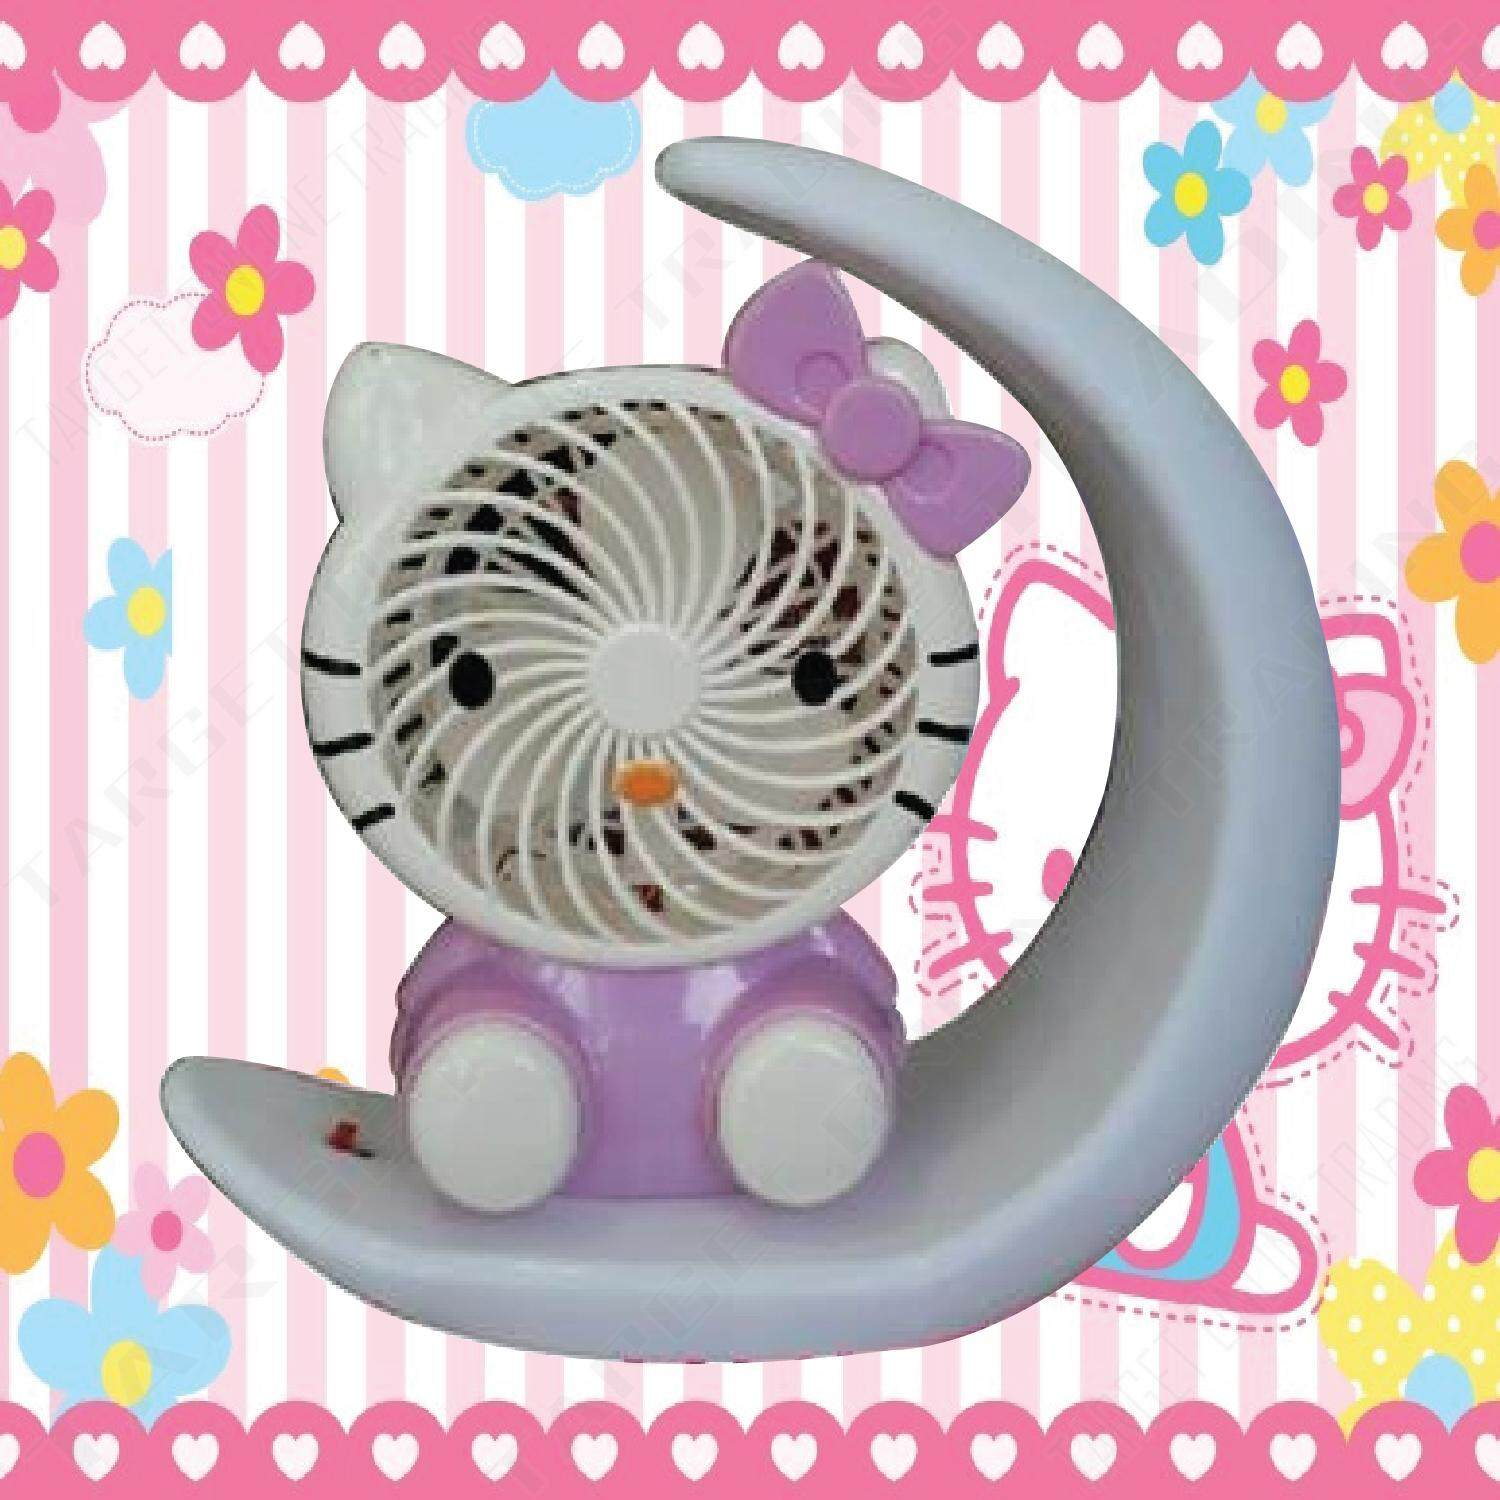 Fitur Hello Kitty Kipas Angin Mini Portable Usb Karakter Handy Fan Creative Desk Table Office Cooling Summer